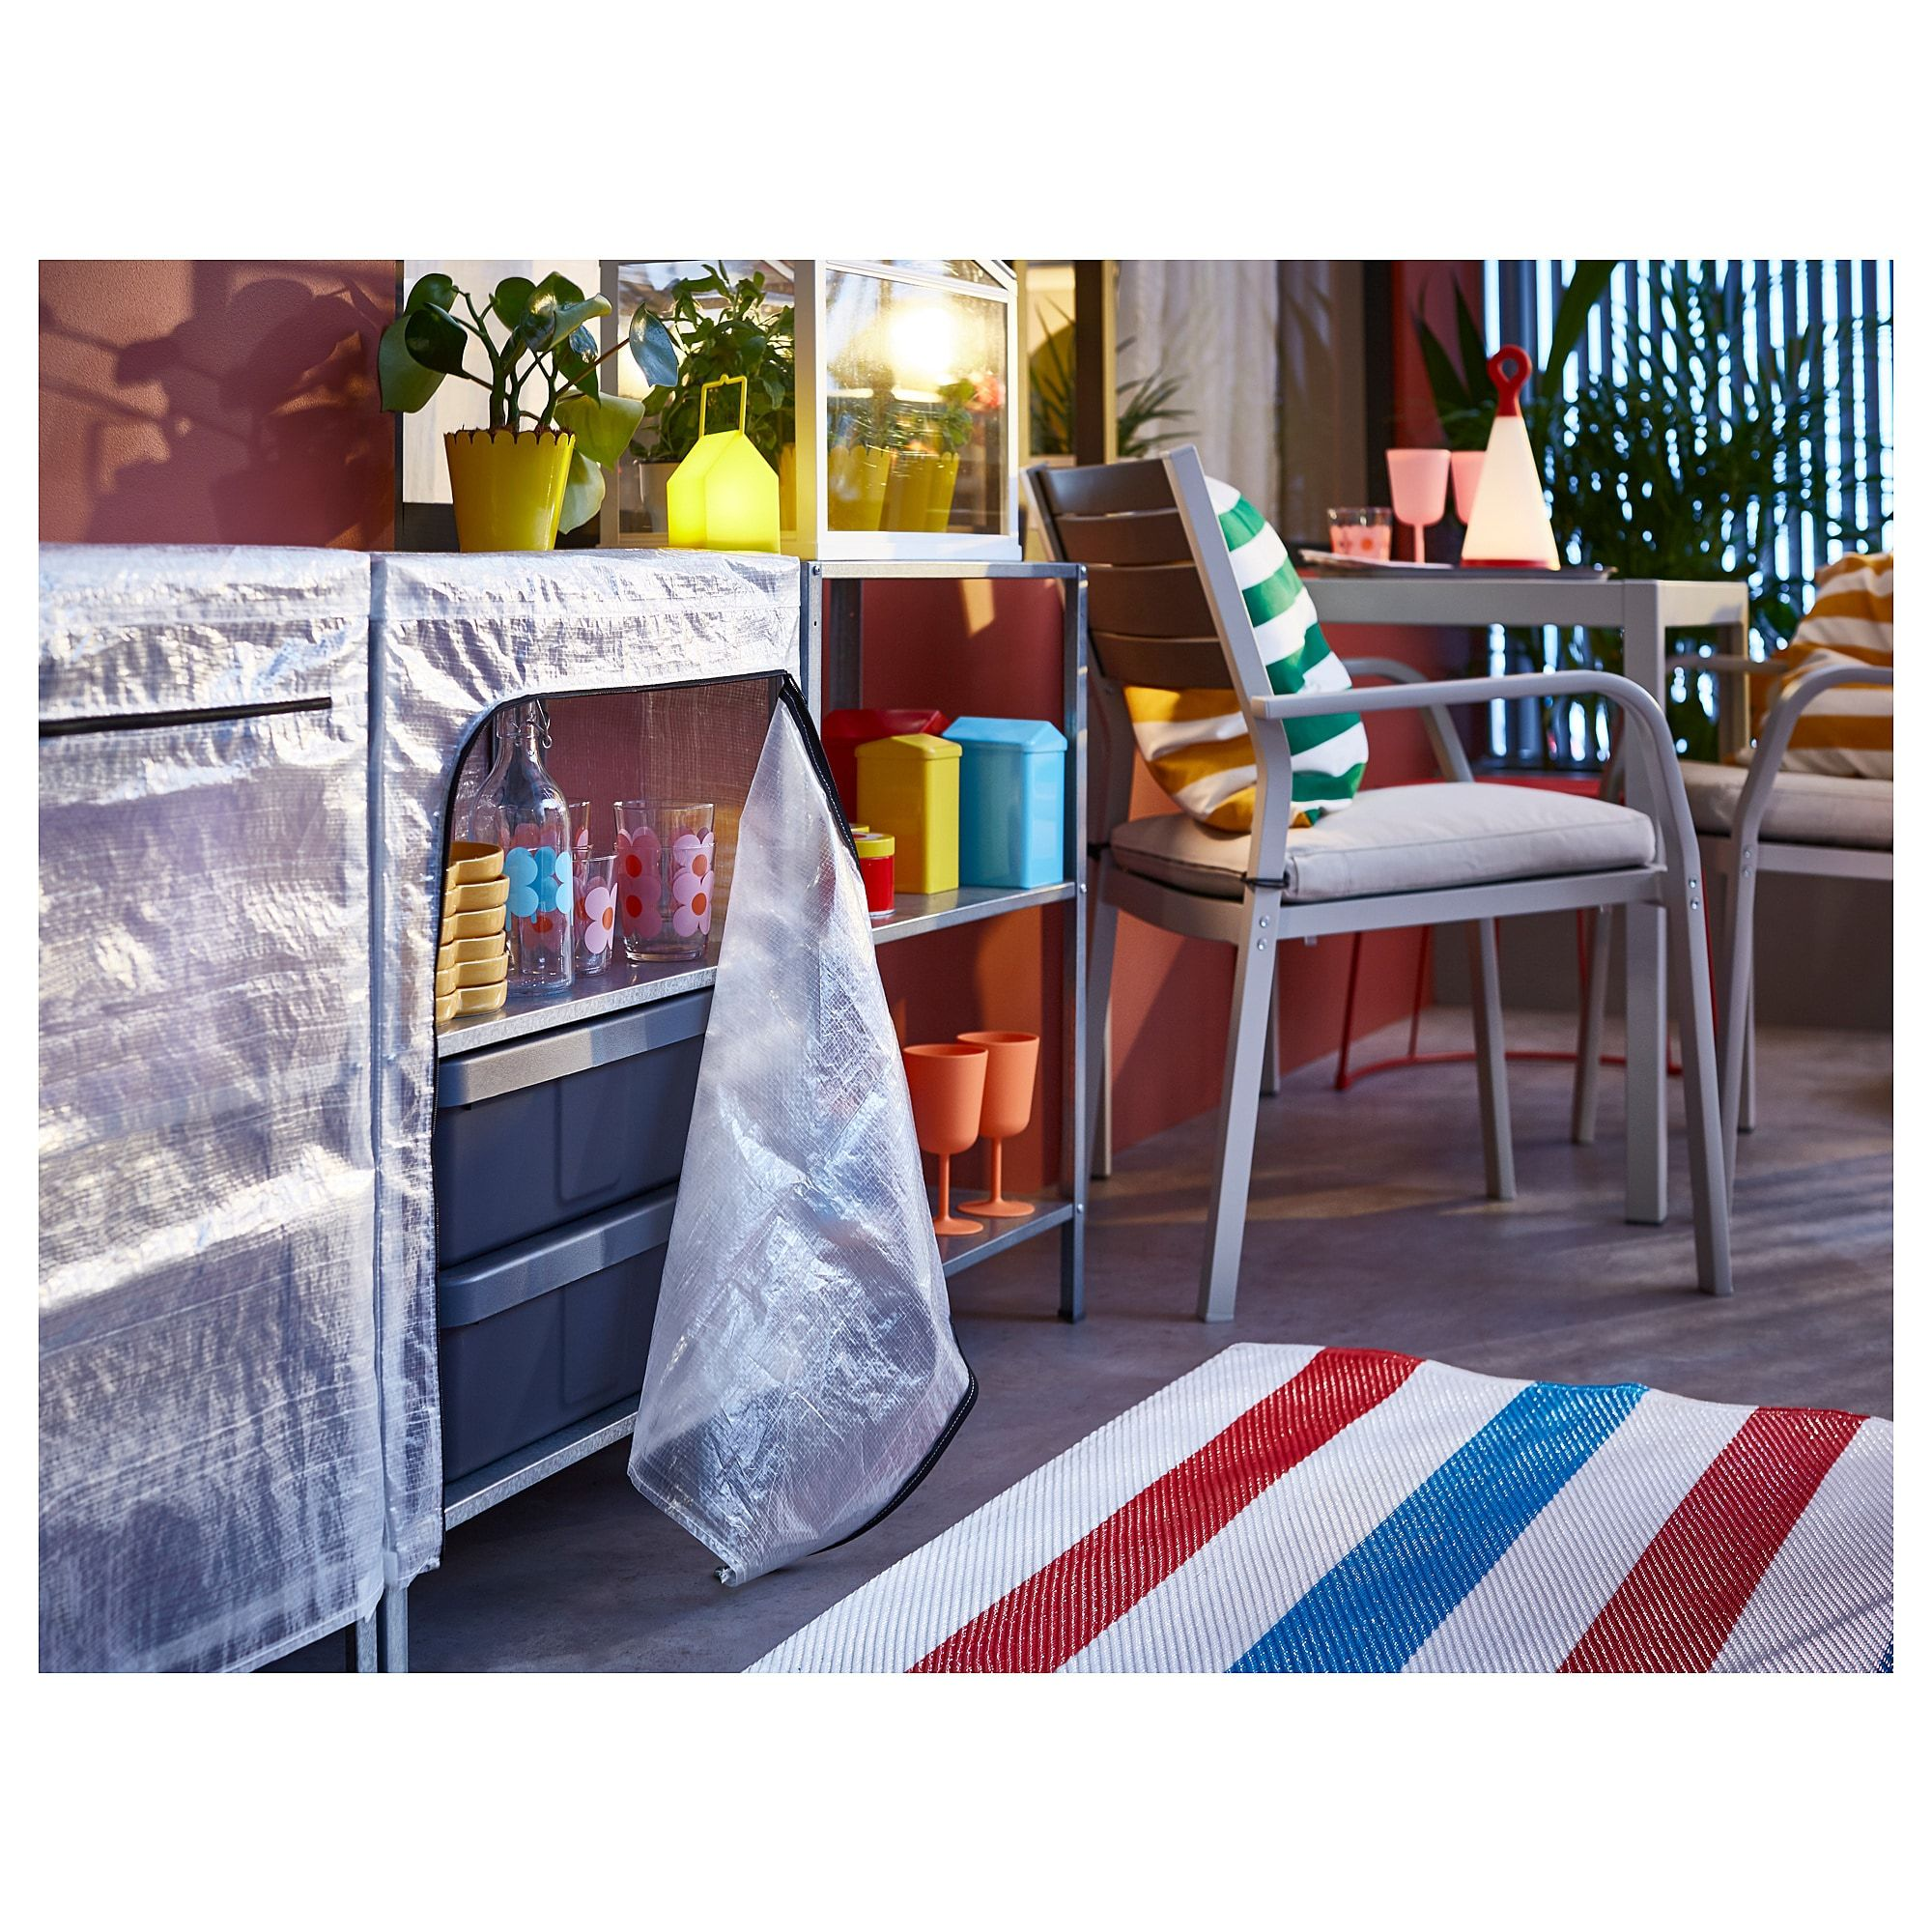 Hyllis Shelving Units With Covers Transparent Ikea Outdoor Shelves Ikea Indoor